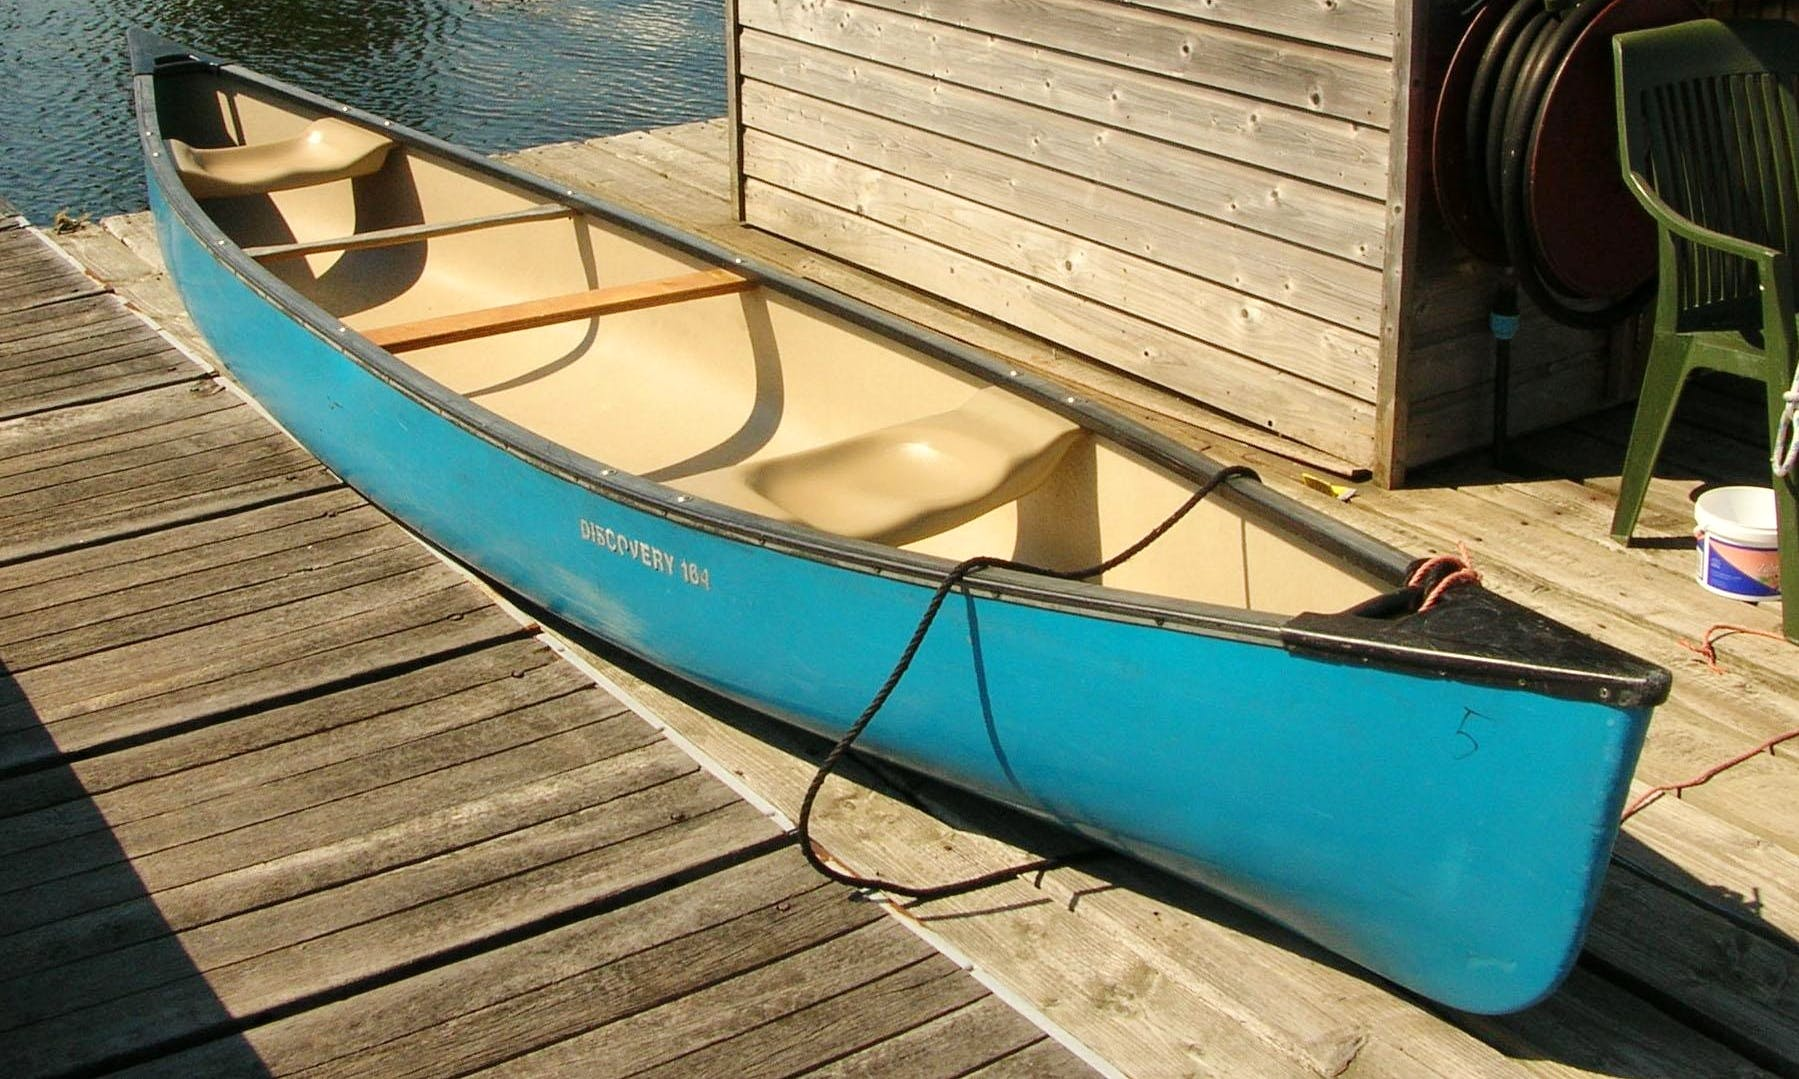 Canadian Canoe Rental in Abcoude, Netherlands